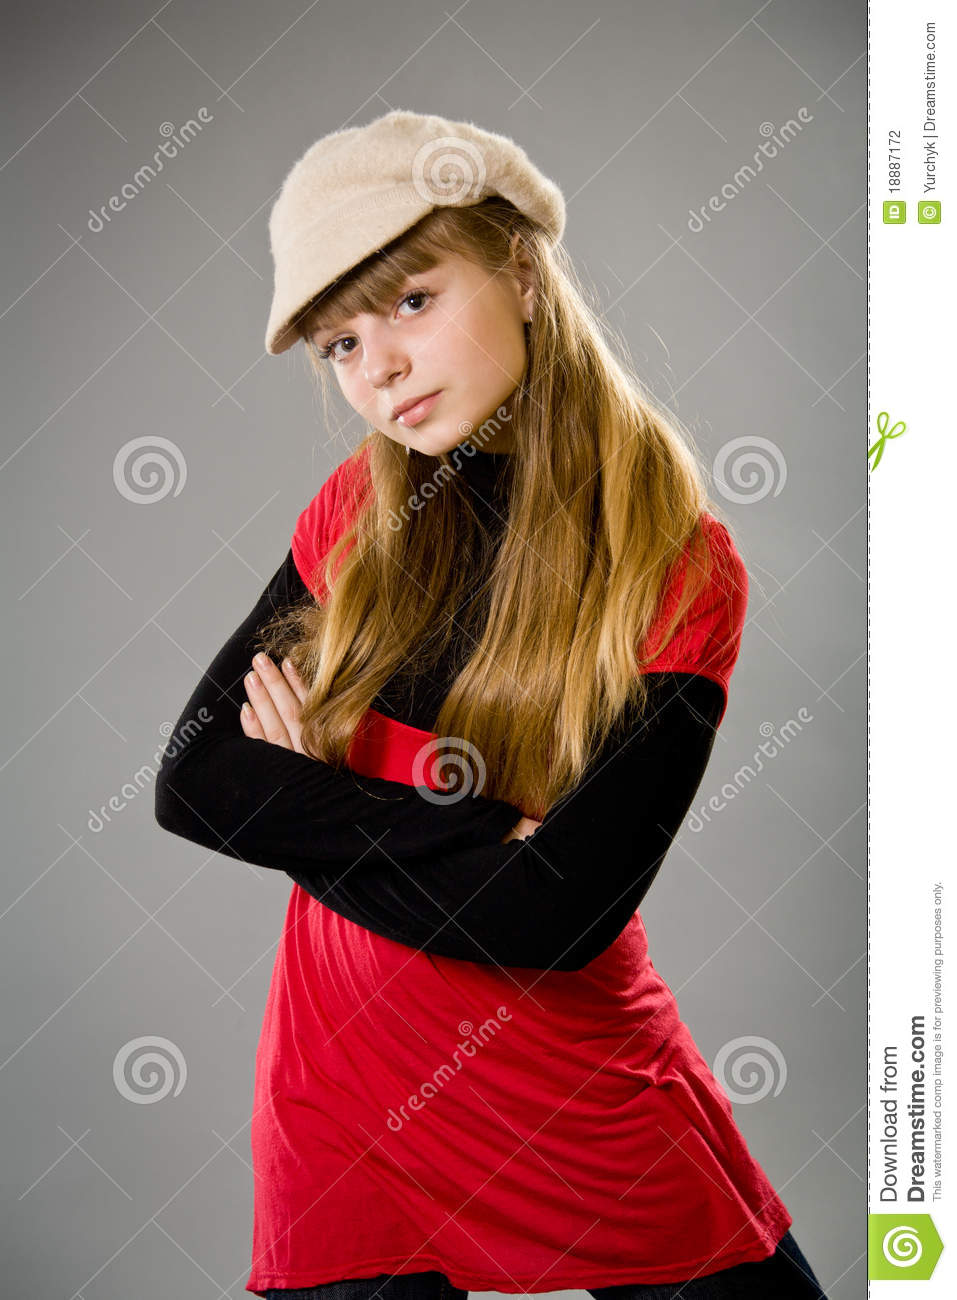 Cute Teenage Girl Wearing A Beret Stock Photography